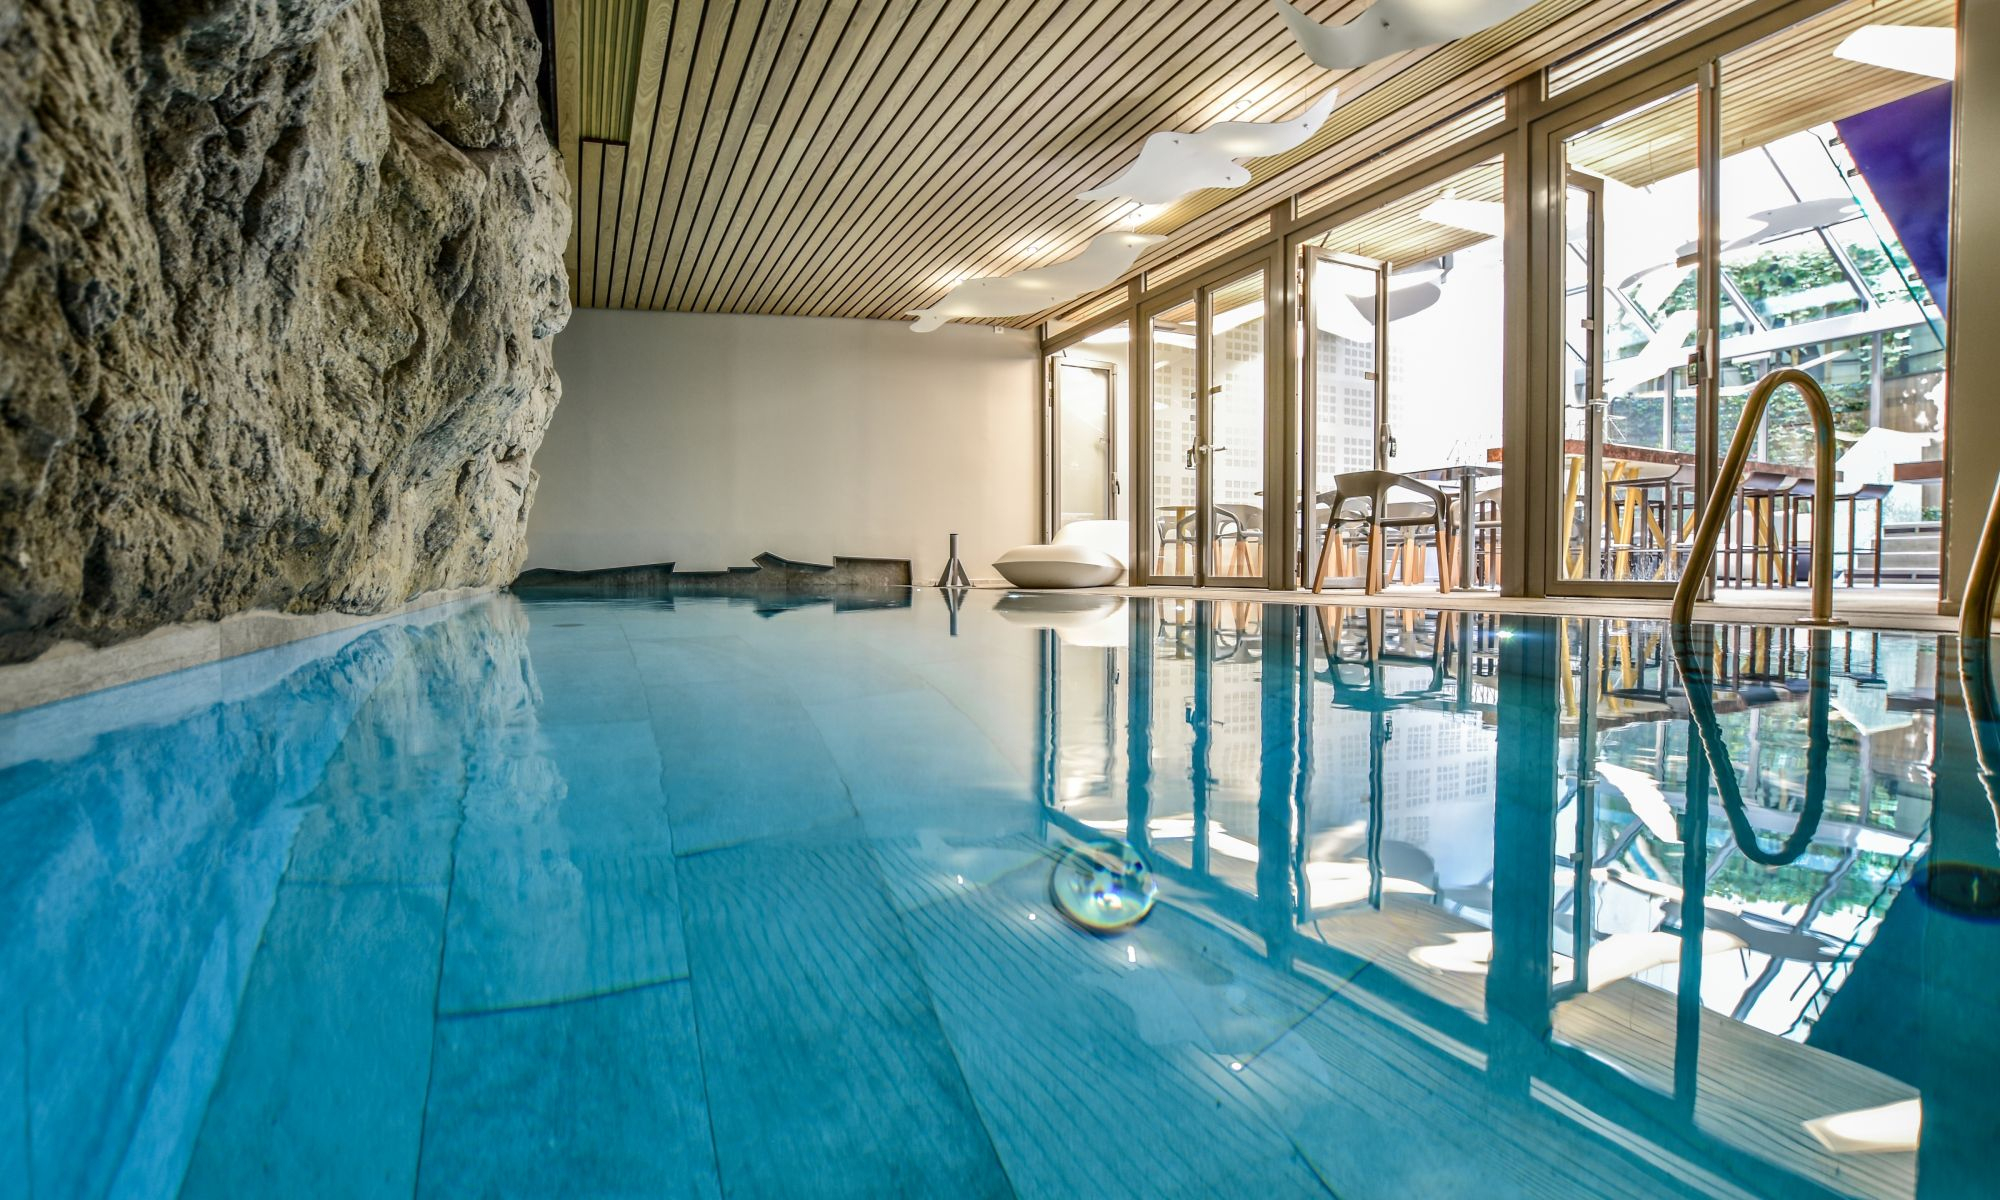 Find A Nice Hotel With Swimming Pool In Paris - Hotel 4* B55 ... avec Hotel Paris Piscine